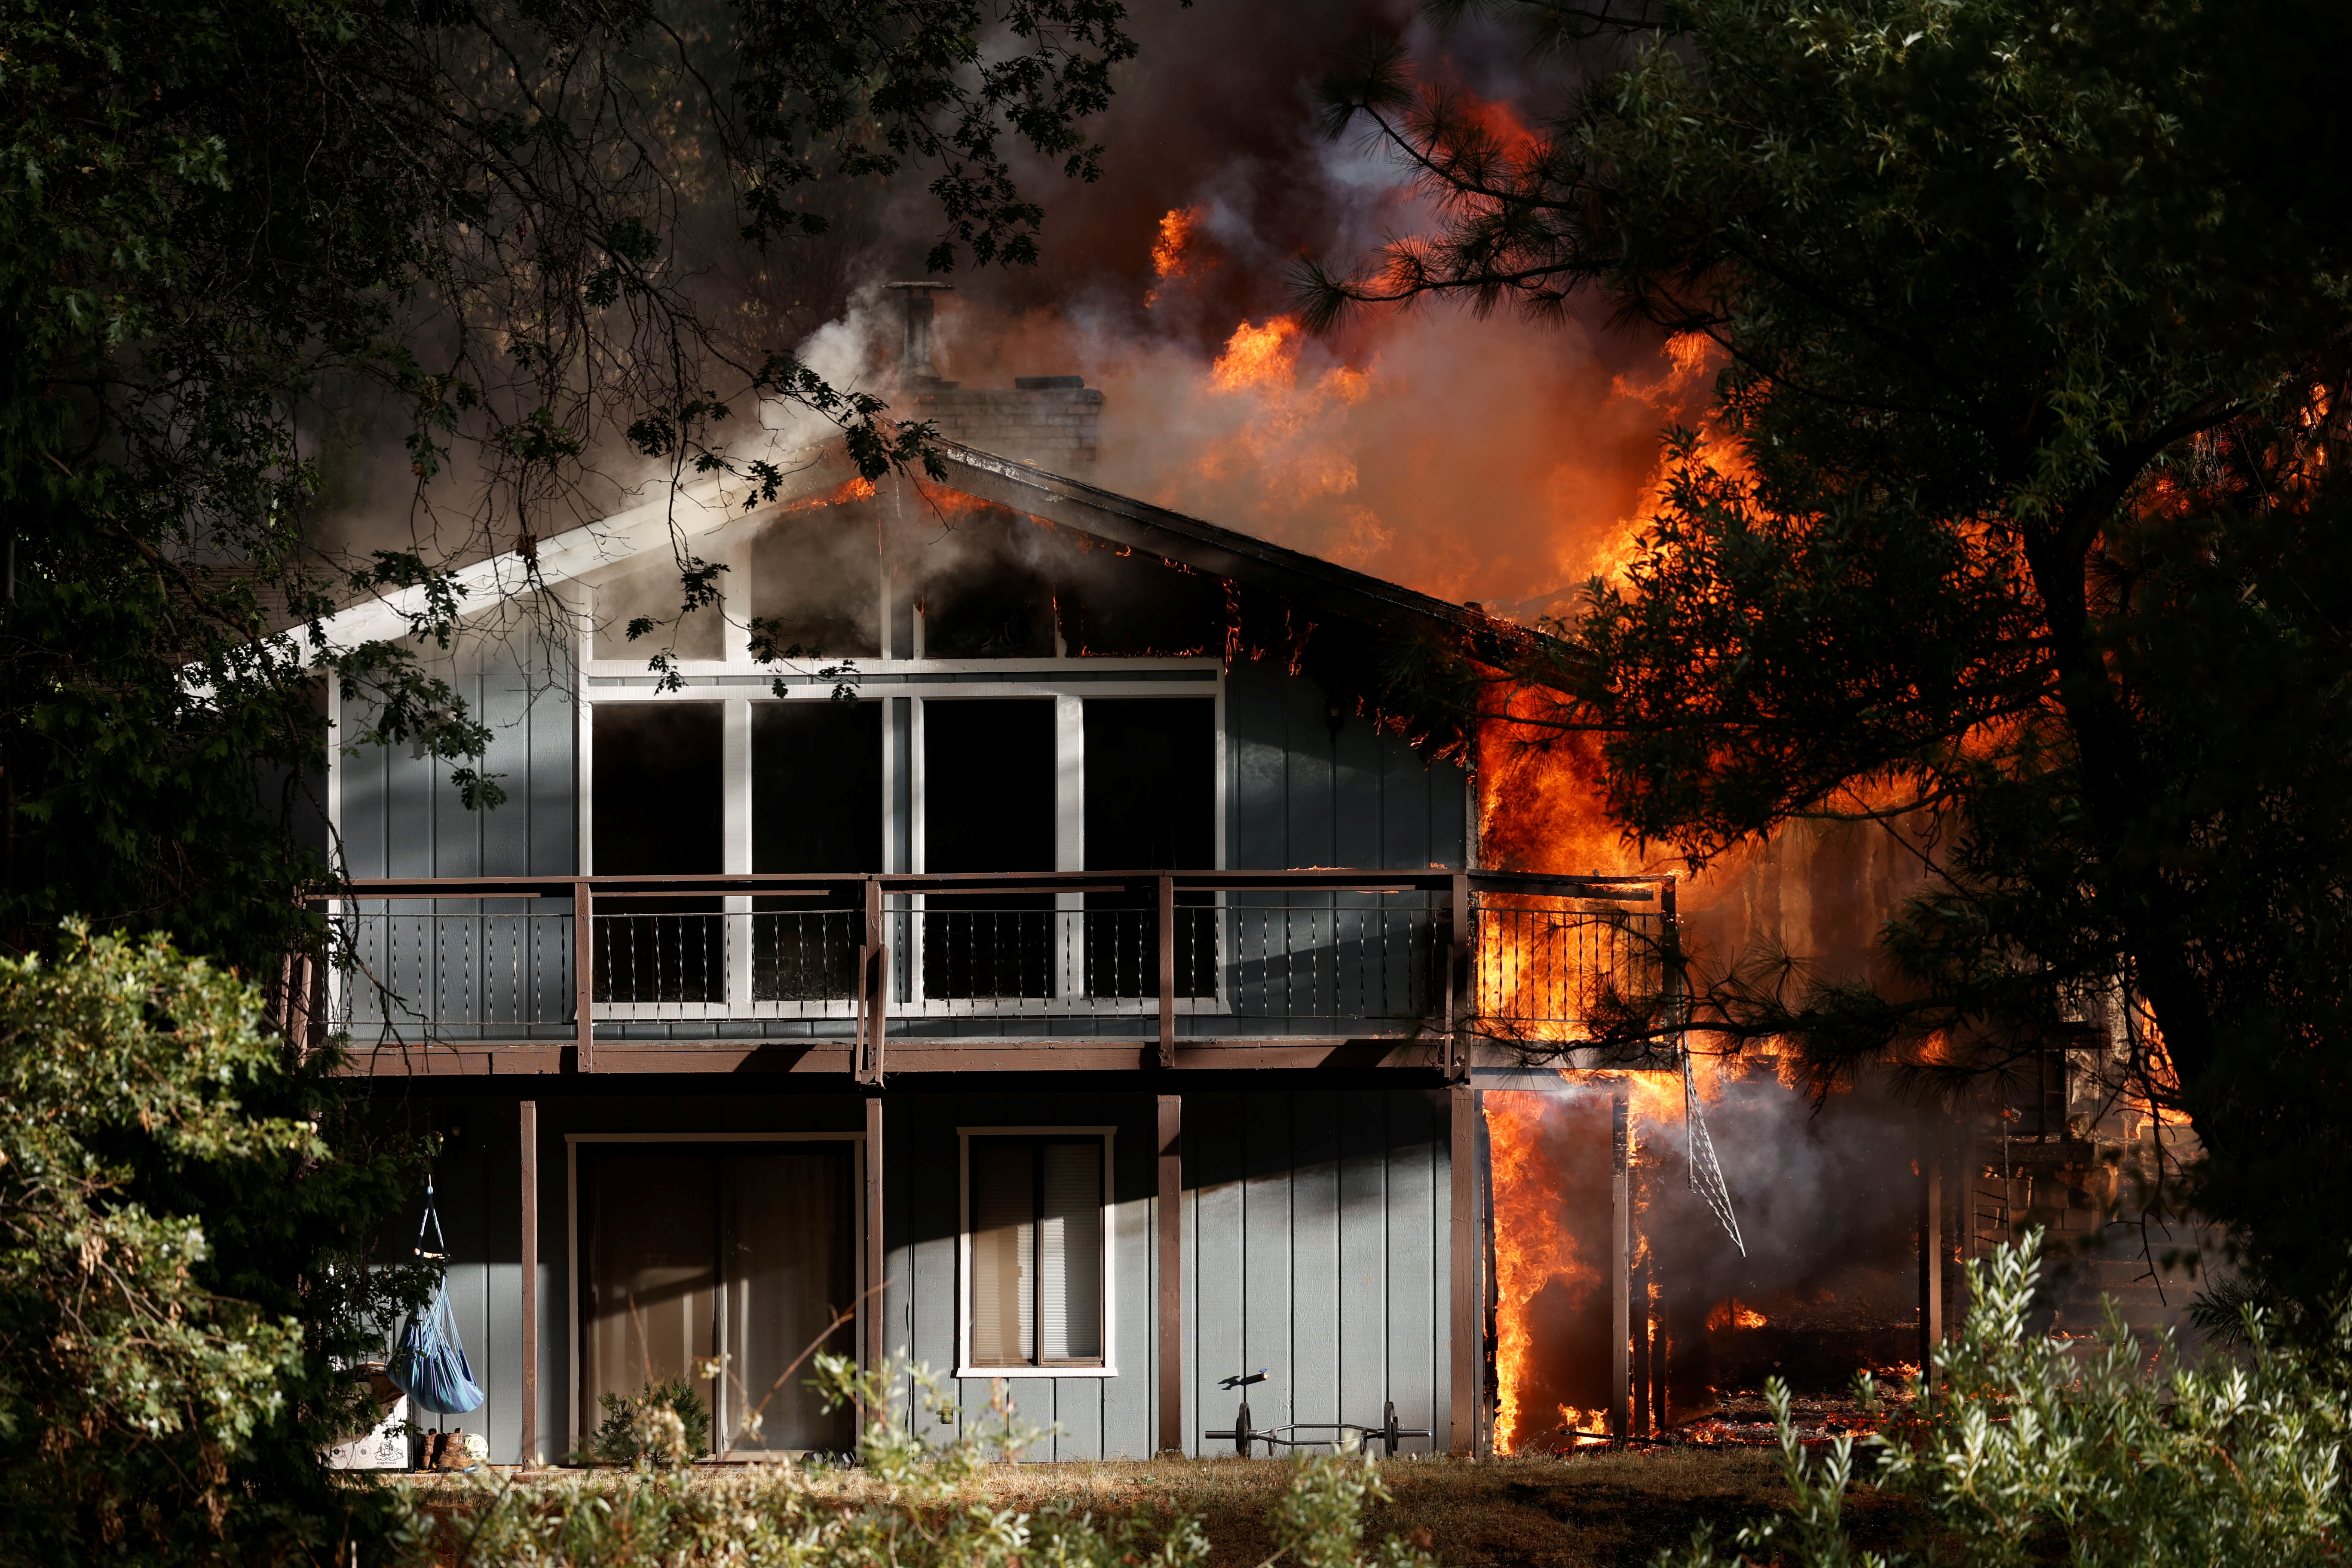 A home is consumed by flames in the River Fire, a wildfire burning near Grass Valley, California, U.S., August 4, 2021. REUTERS/Fred Greaves